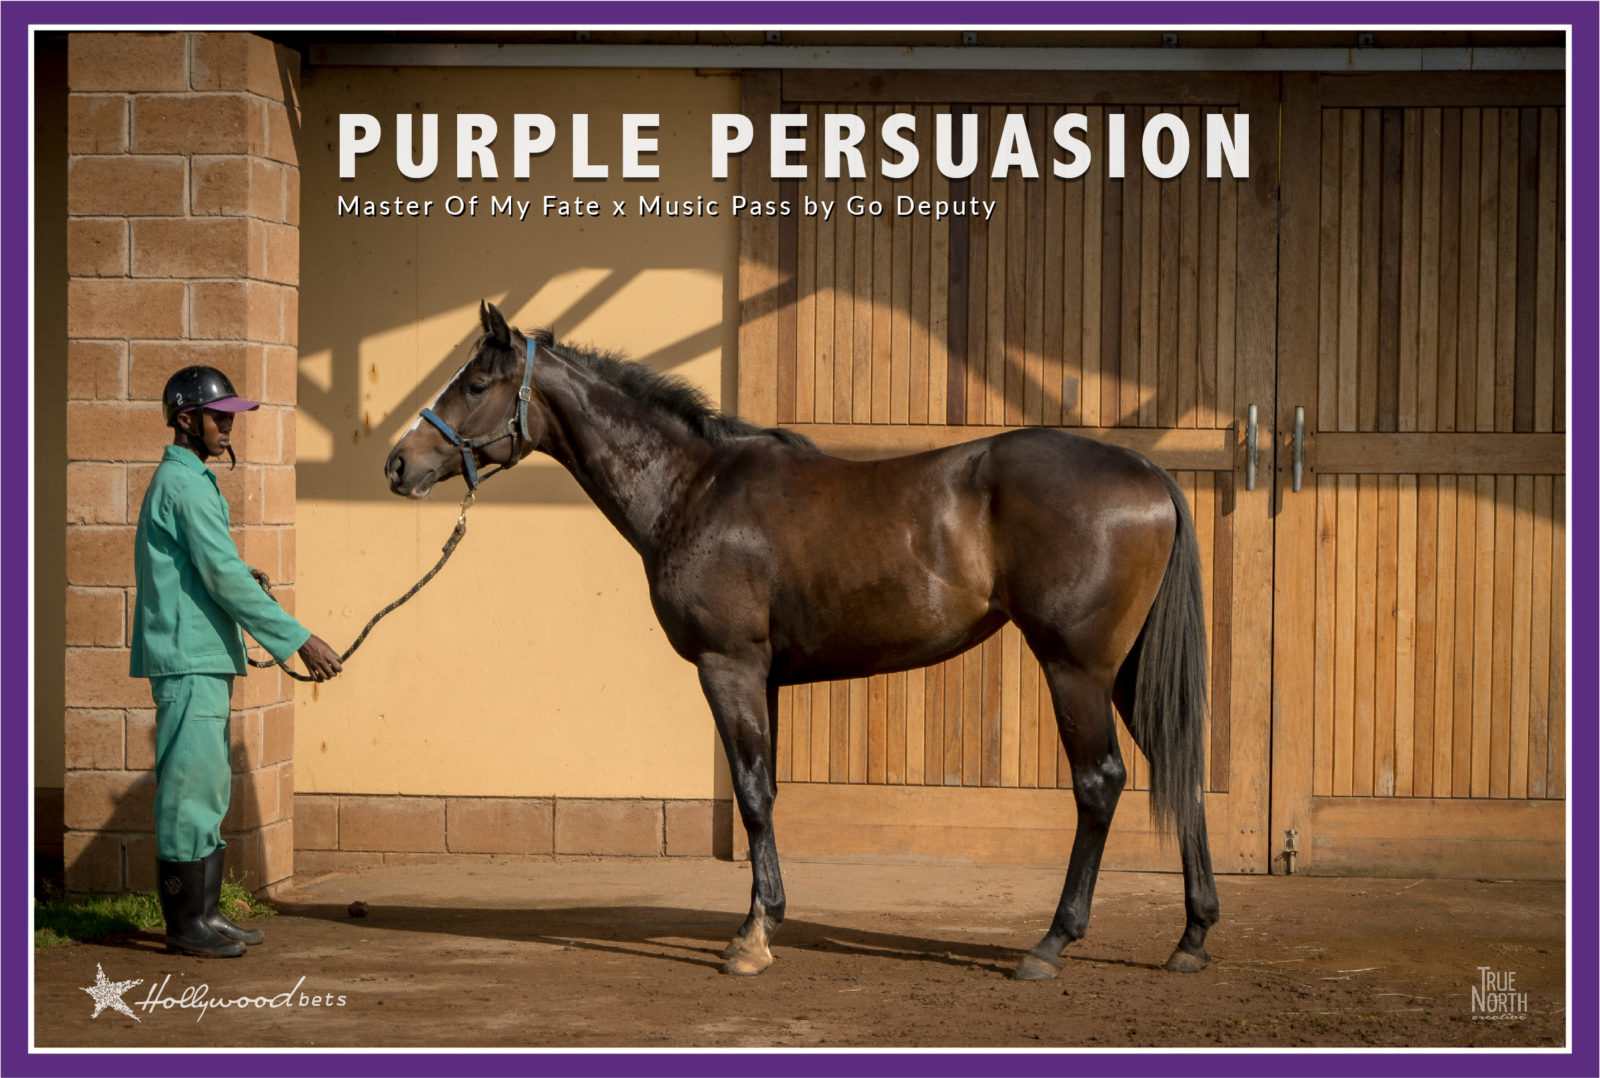 Purple Persuasion. Bay filly. Sire: Master of My Fate. Dam: Music Pass (Go Deputy). Horse owned by the Hollywood Syndicate.